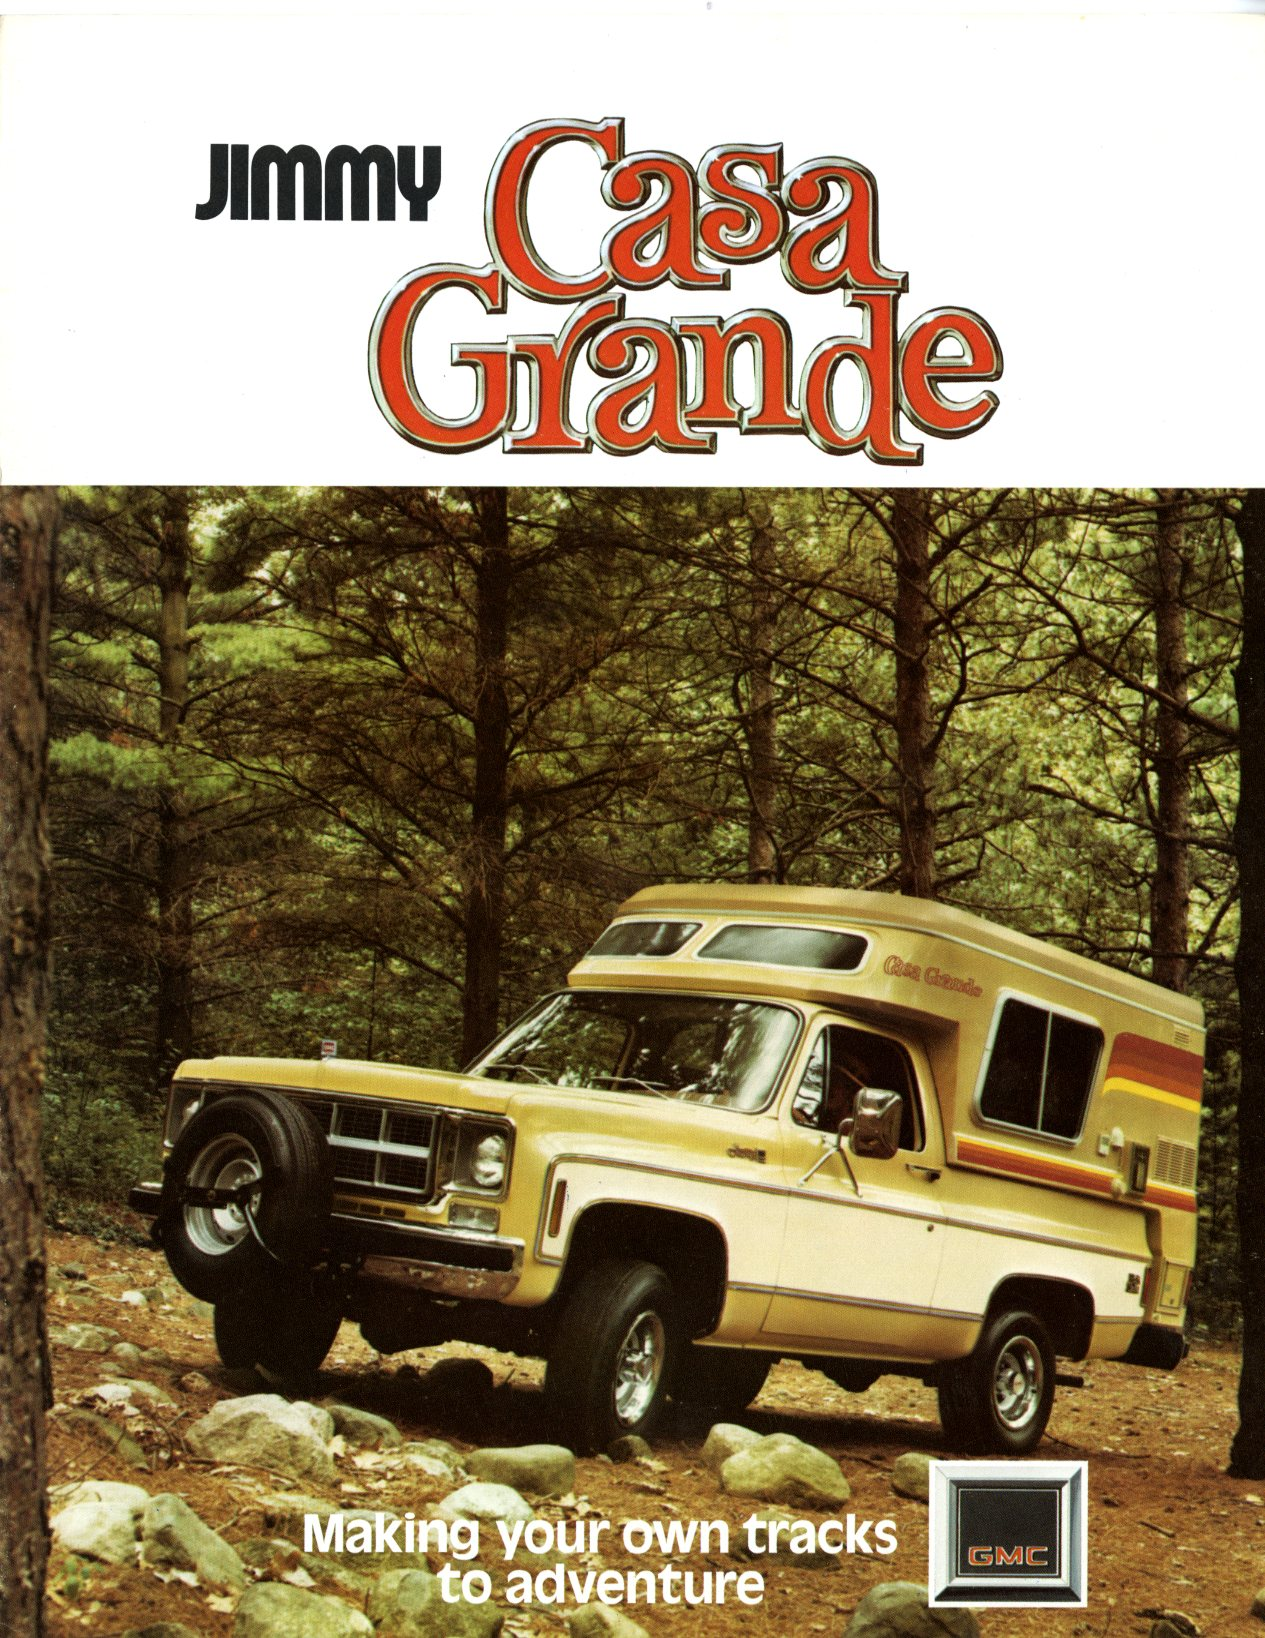 All Of 73 87 Chevy And Gmc Special Edition Pickup Trucks Part Ii 1976 Camper Truck That May Be One The Reasons So Few People Decided To Buy Them Others Were As You Can Imagine Not Great A Practicality High Weight